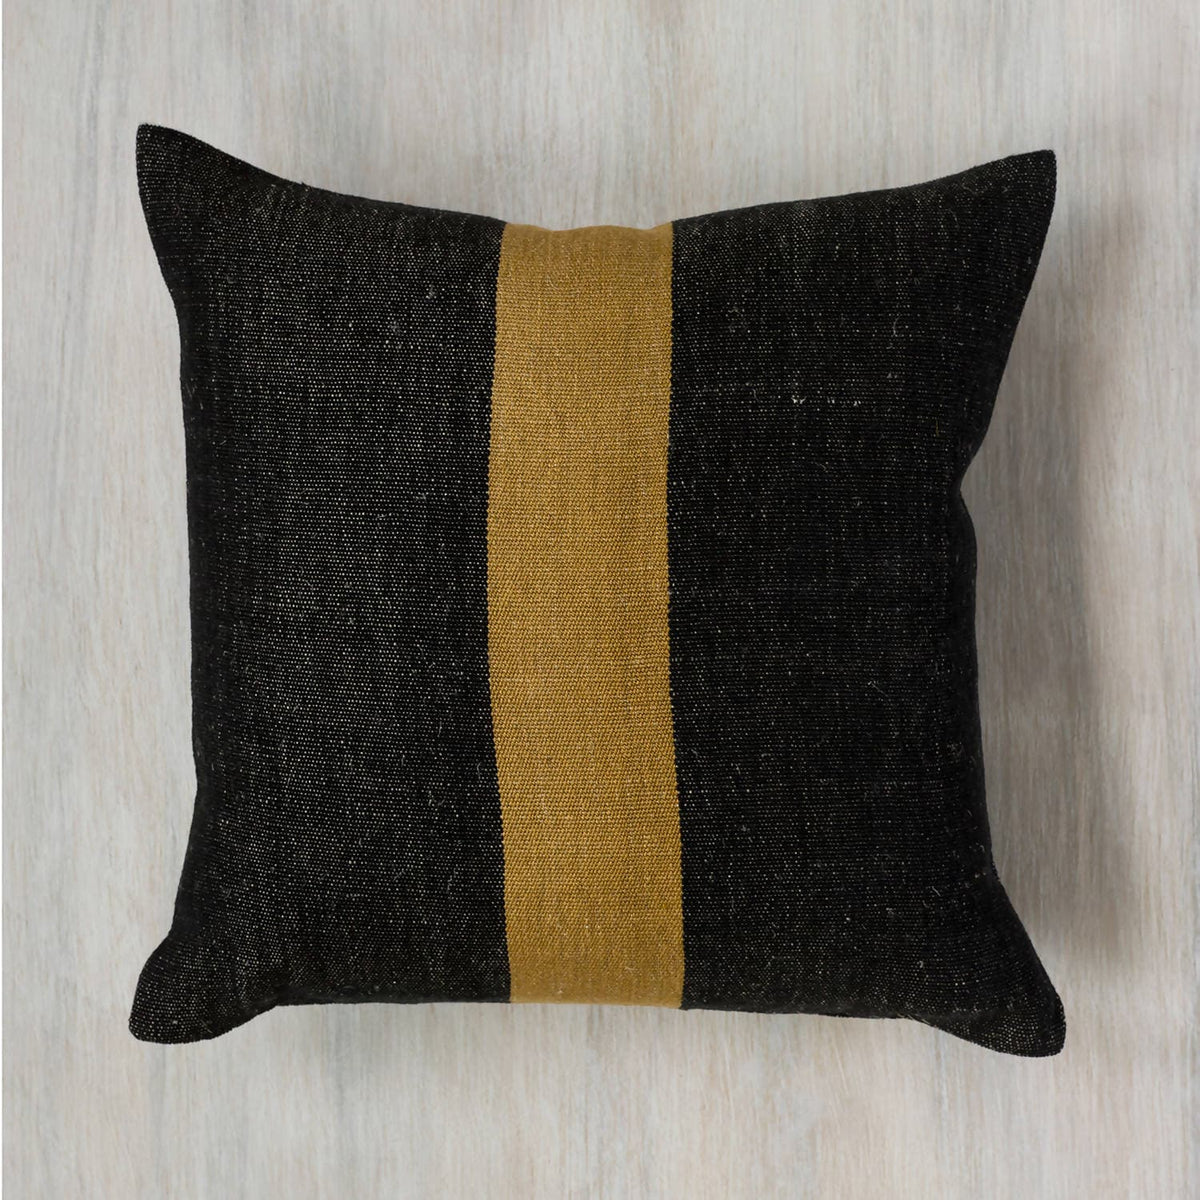 Black & Bronze Handwoven Linen Pillow